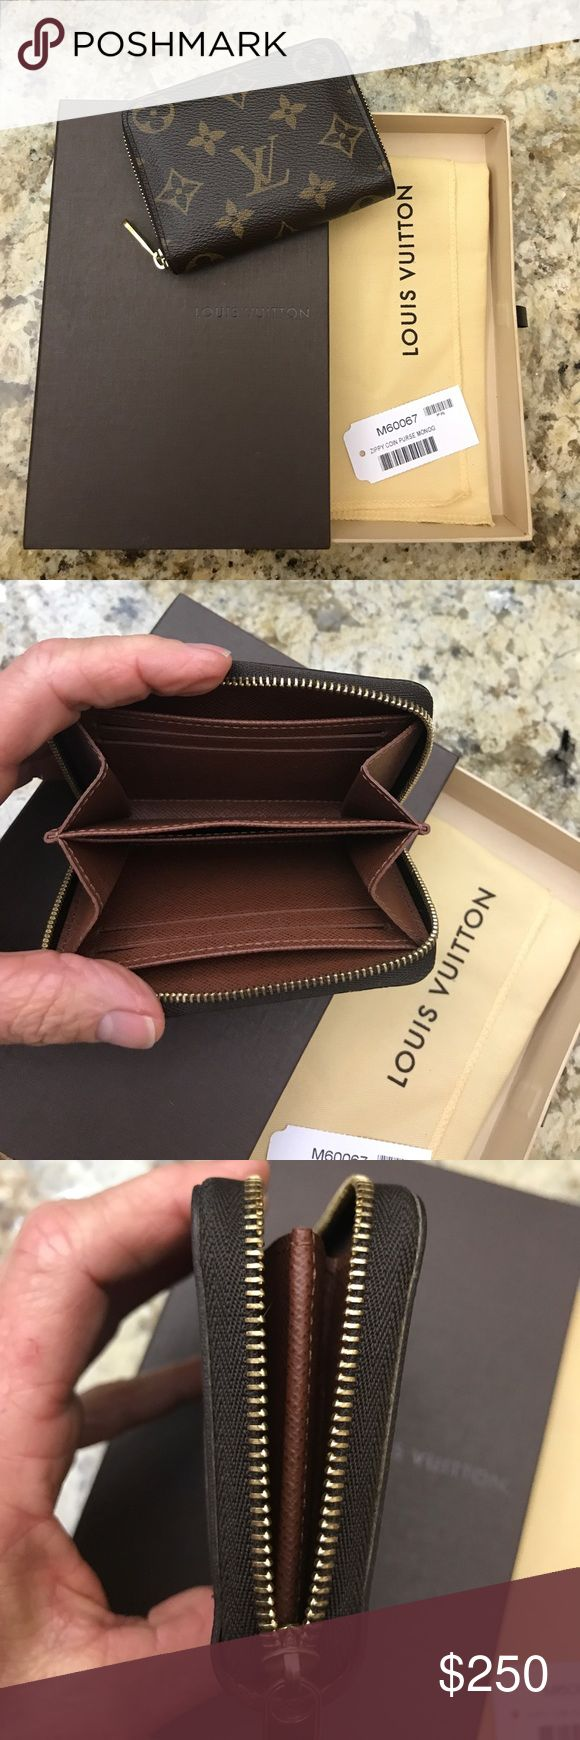 Louis Vuitton coin purse Louis Vuitton coin purse, 4 slots for credit cards. Great for anyone's lifestyle. Louis Vuitton Bags Wallets